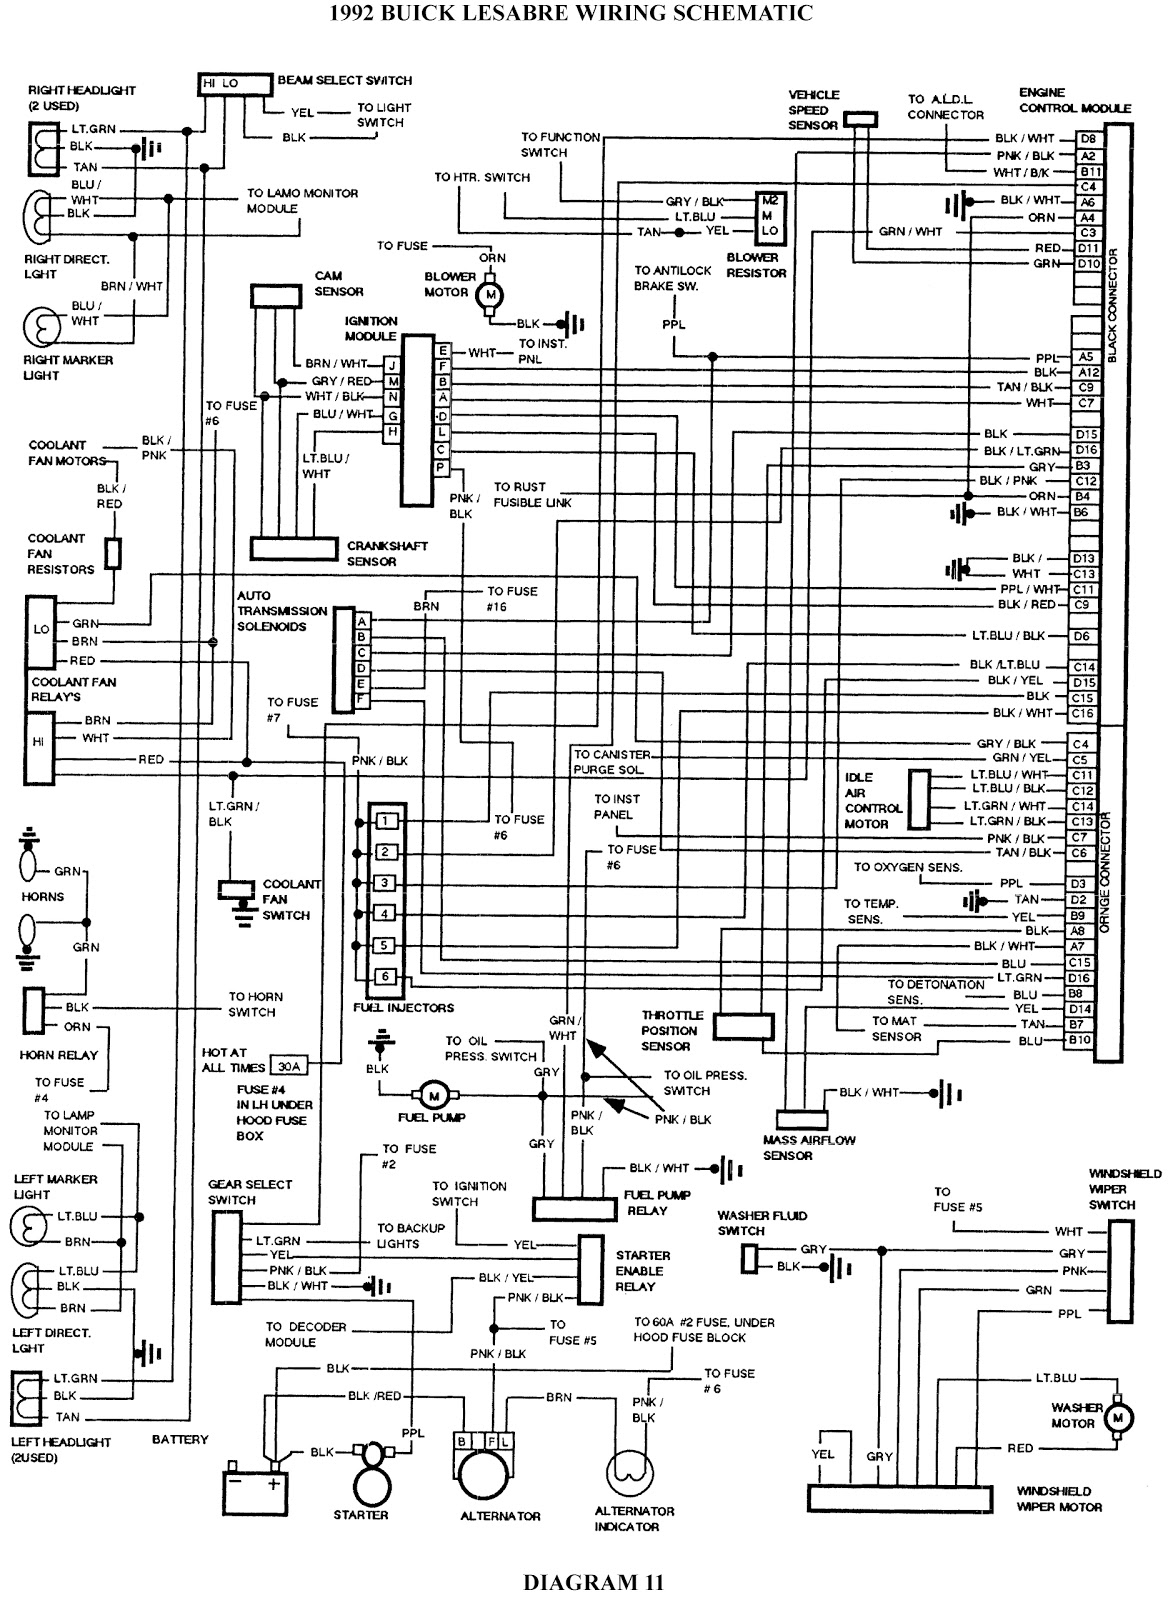 1978 Buick Wiring Diagram - Wiring Diagram Blog rent-freeze -  rent-freeze.psicologipegaso.itrent-freeze.psicologipegaso.it